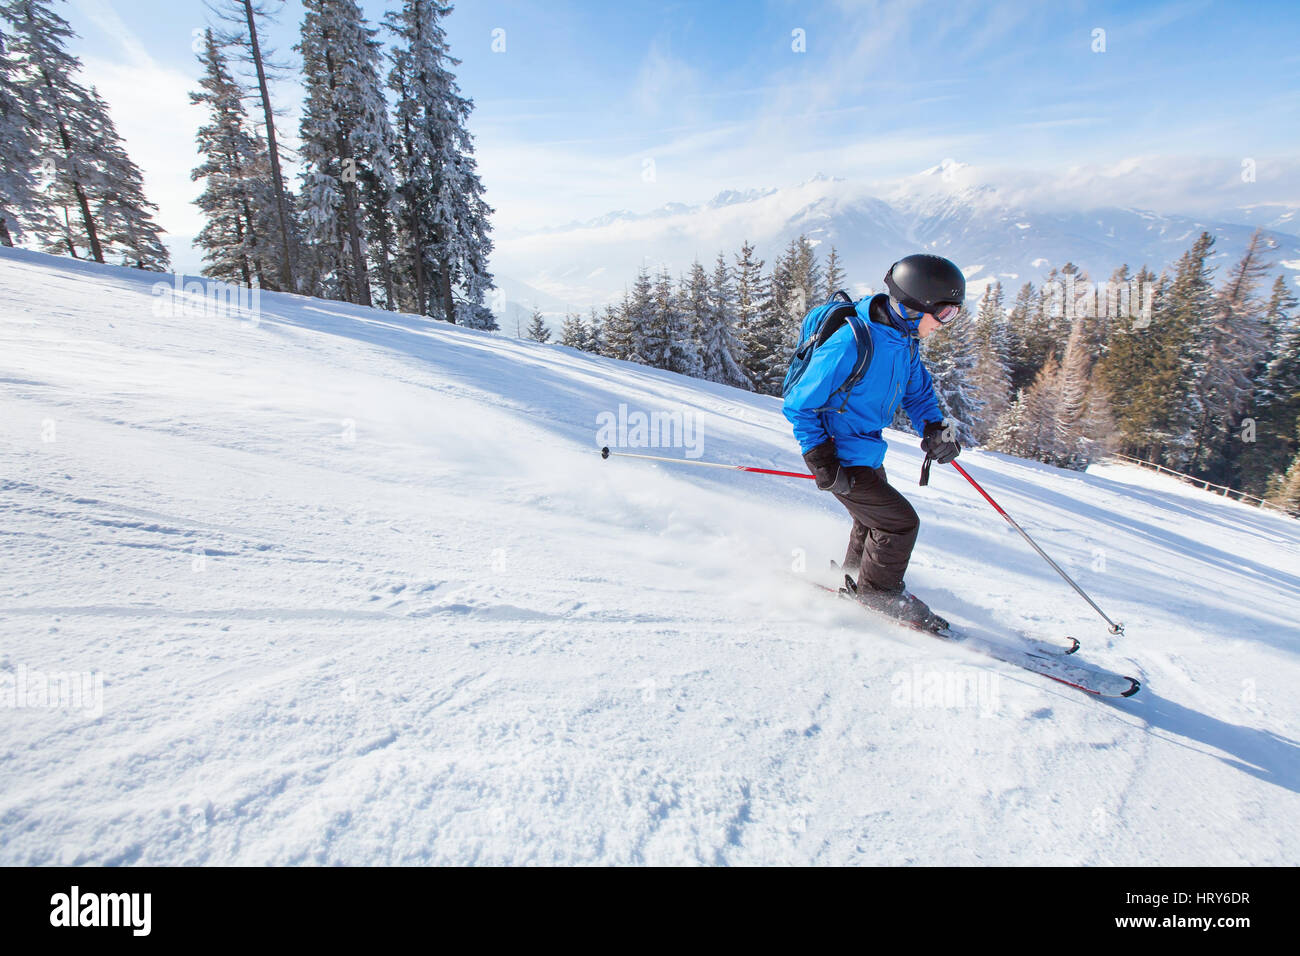 downhill skiing, skier going fast down the mountain, winter sport background - Stock Image